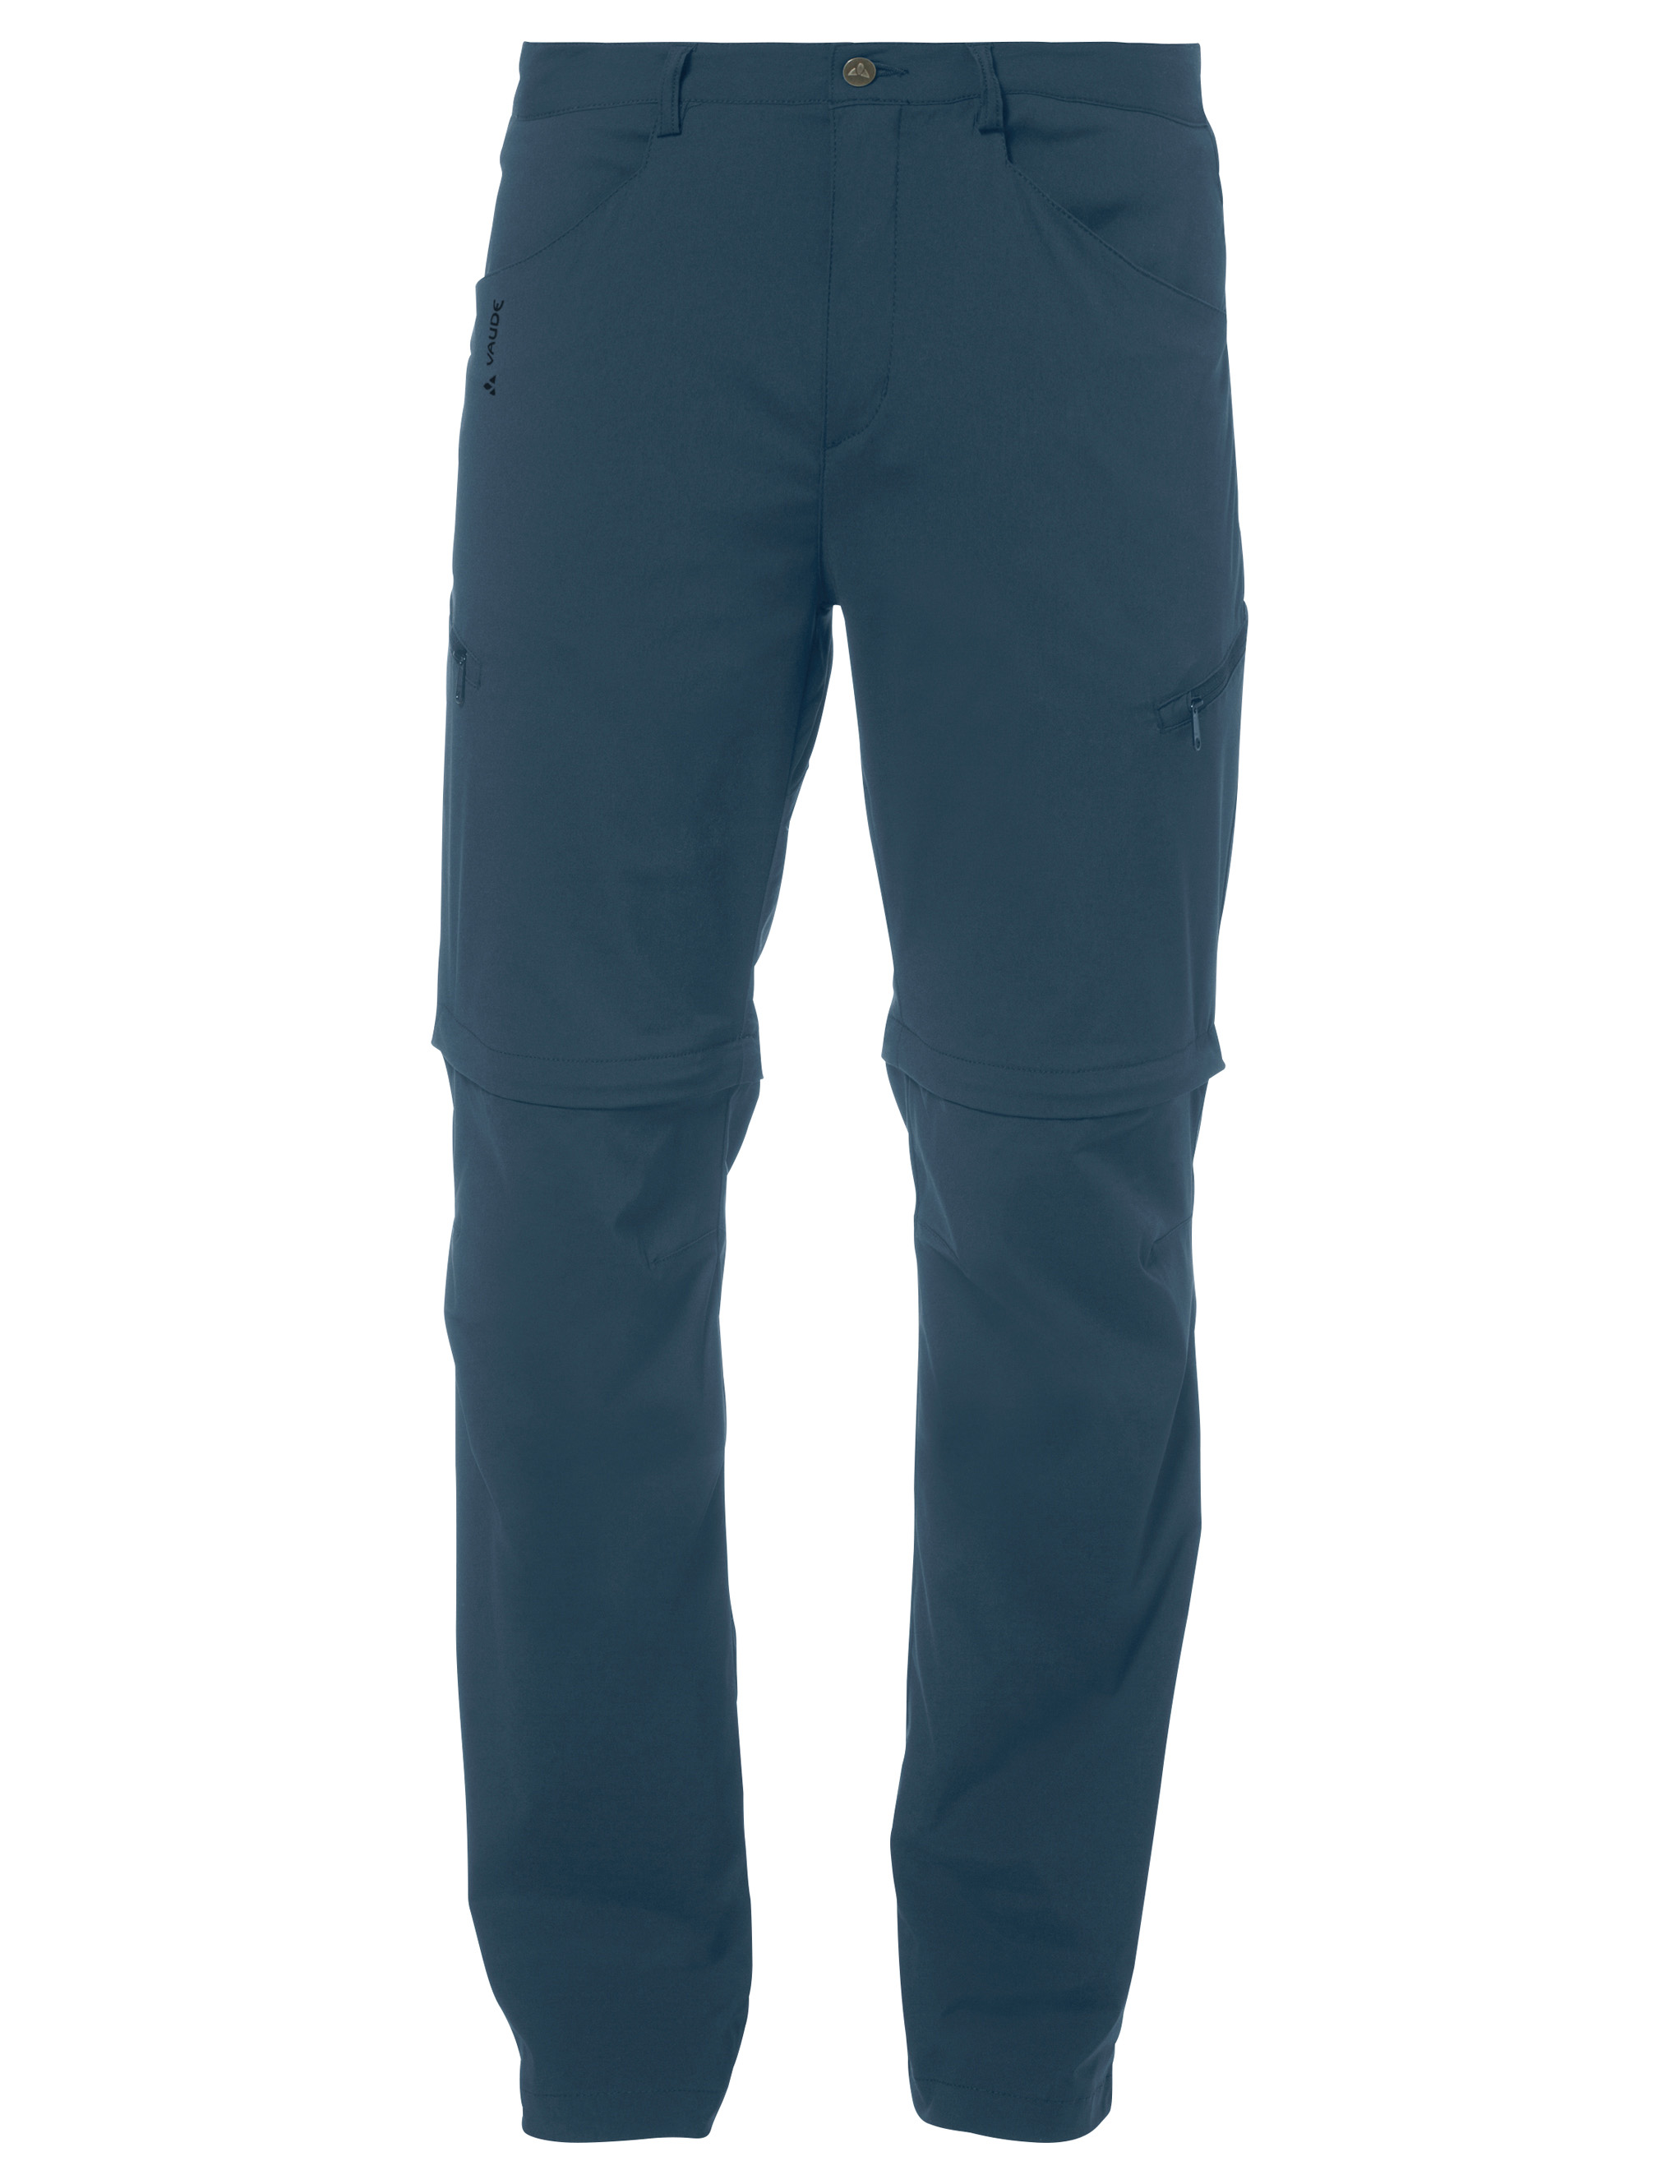 VAUDE Men´s Yaki ZO Pants dark petrol Größe XL - schneider-sports